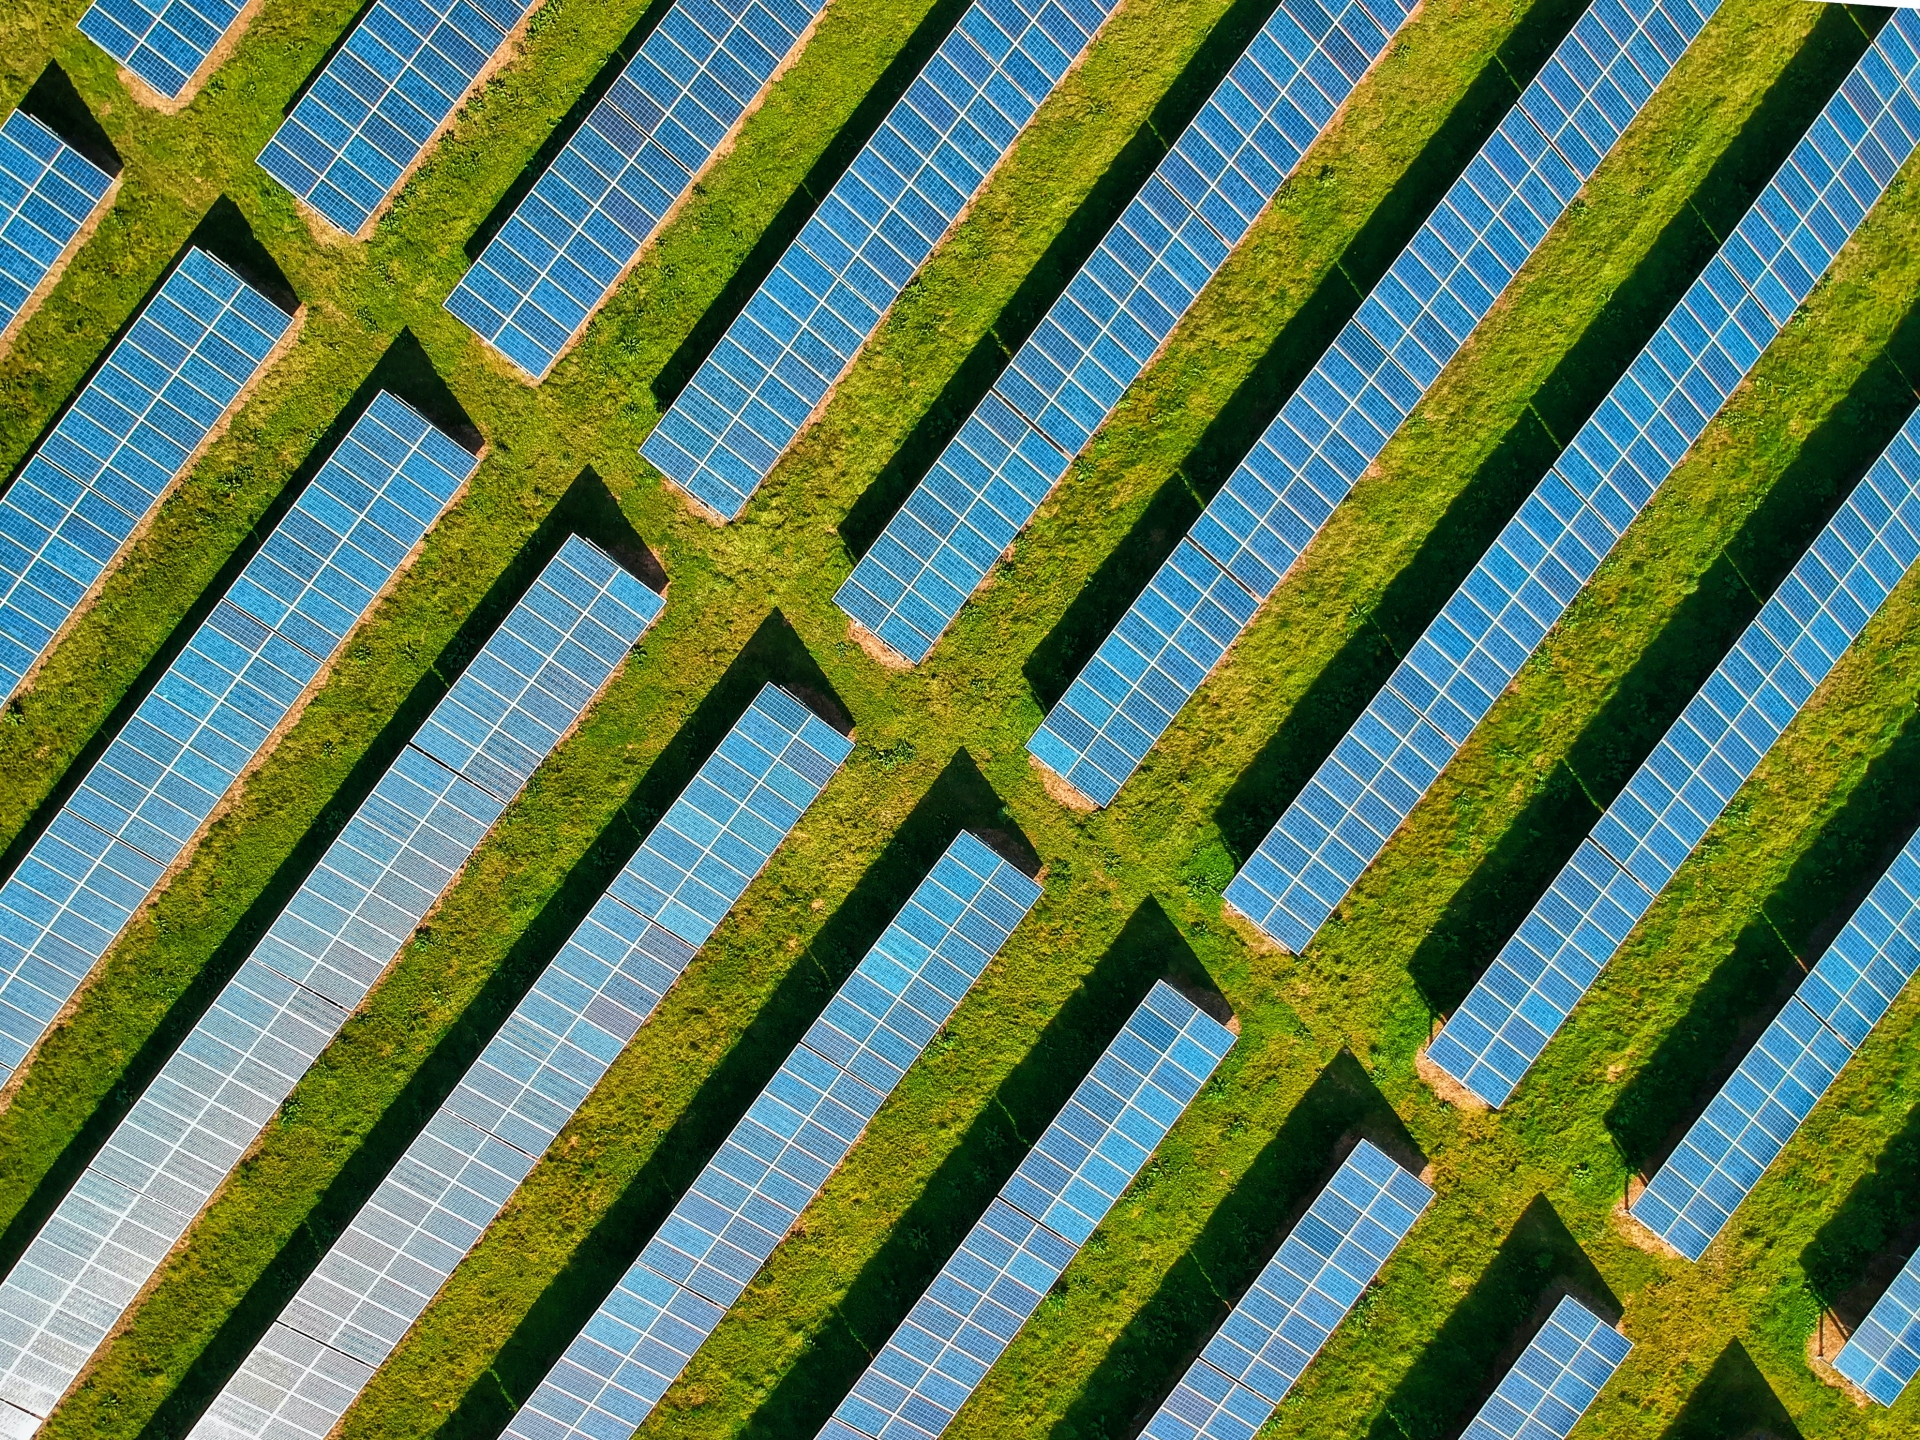 Chinese solar manufacturers in Vietnam may face an investigation from the US